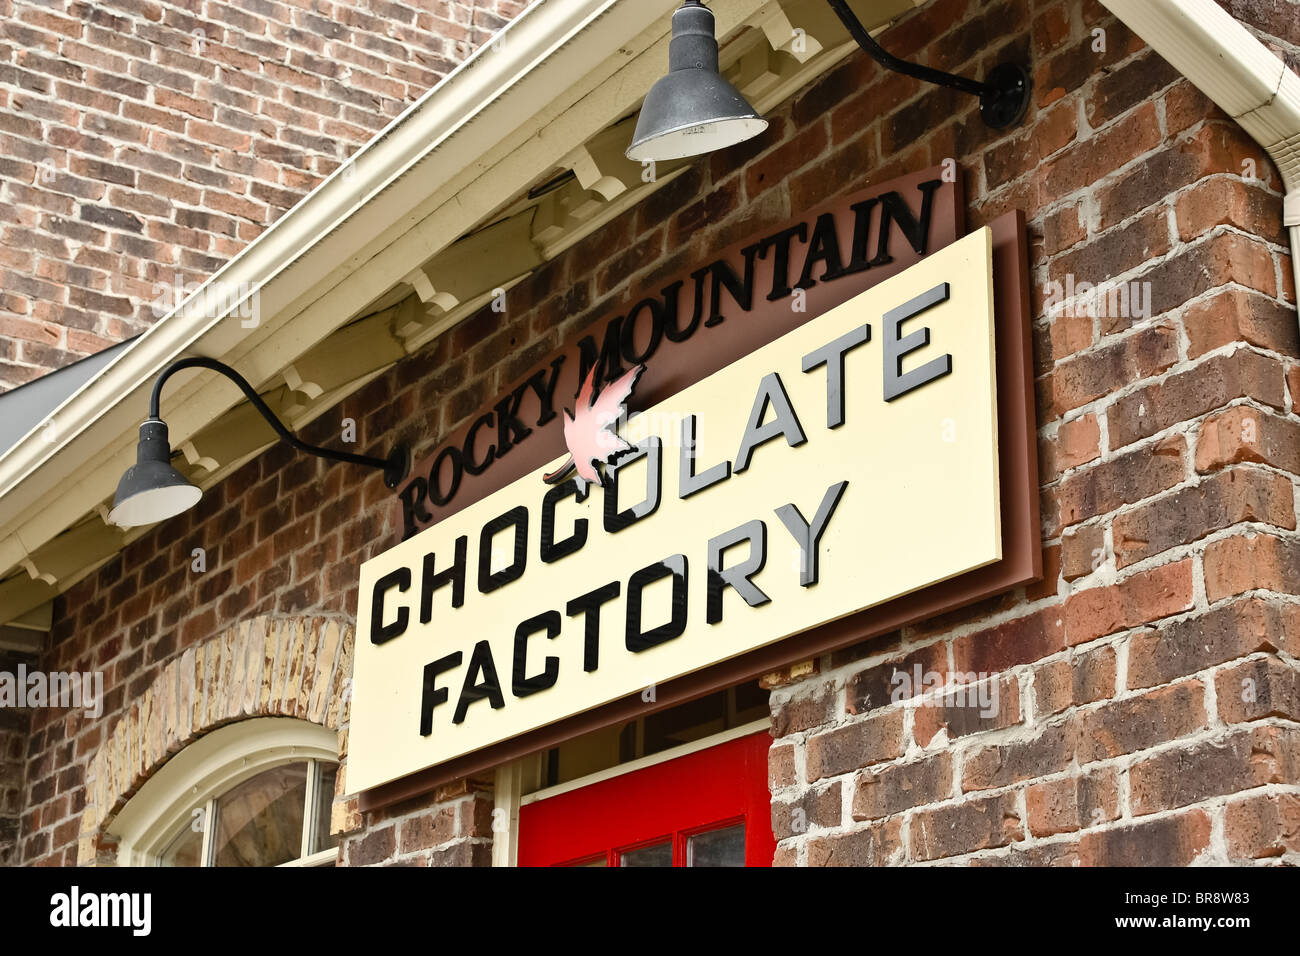 rocky mountain chocolate factory store sign Stock Photo, Royalty ...